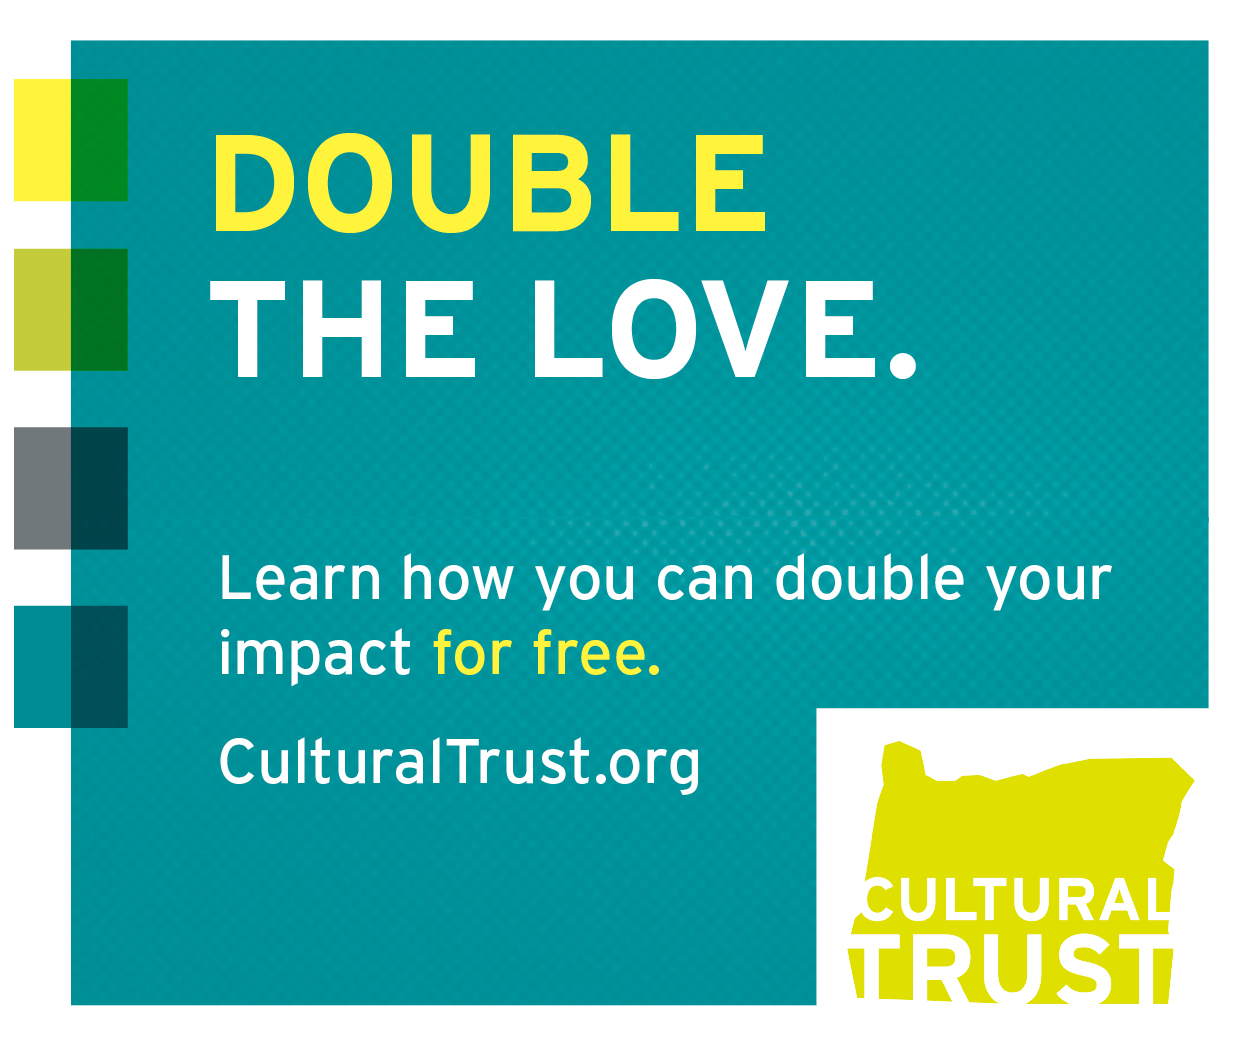 double your impact through donating to the Oregon Cultural Trust